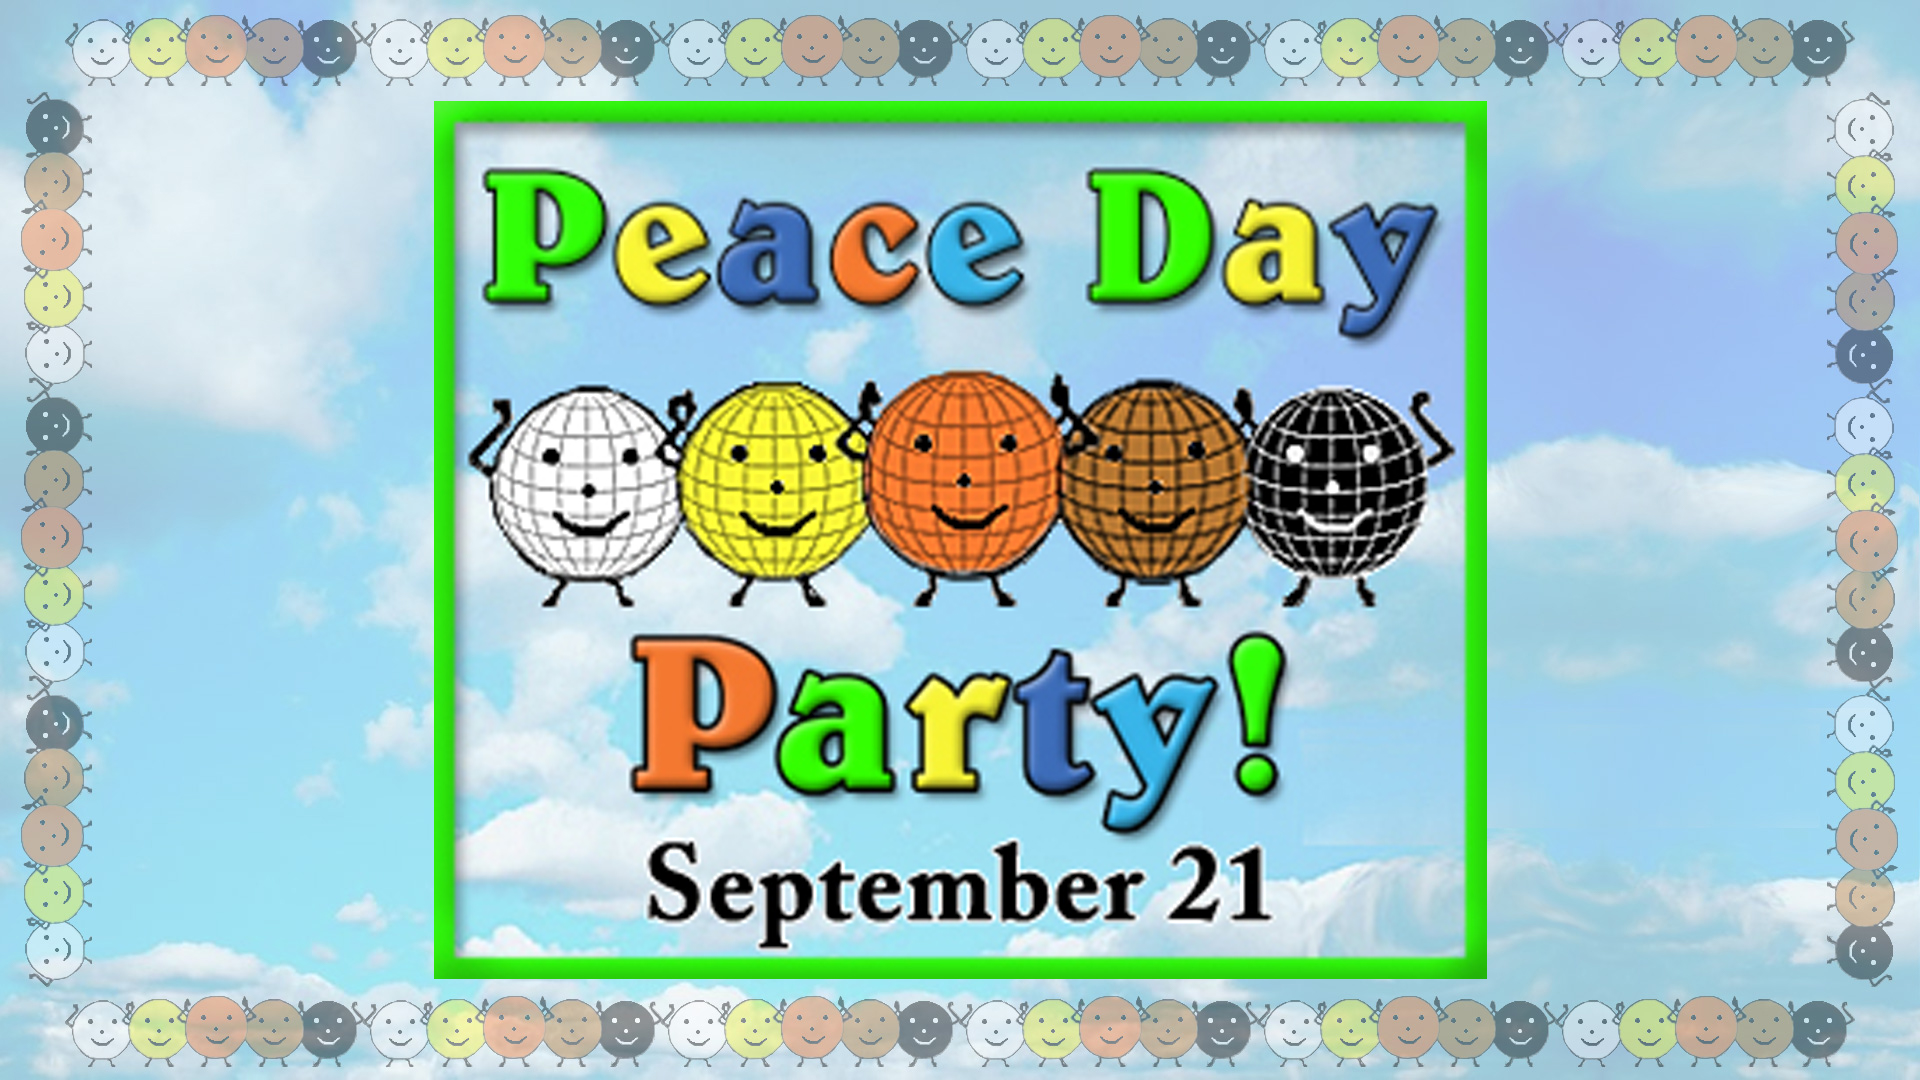 Peace Day Sizzle Reel  Happy And Healthy New Year In Peace Love To All Woodstock Forever Peace Love Hope Harmony Movie Tv Series Coming In